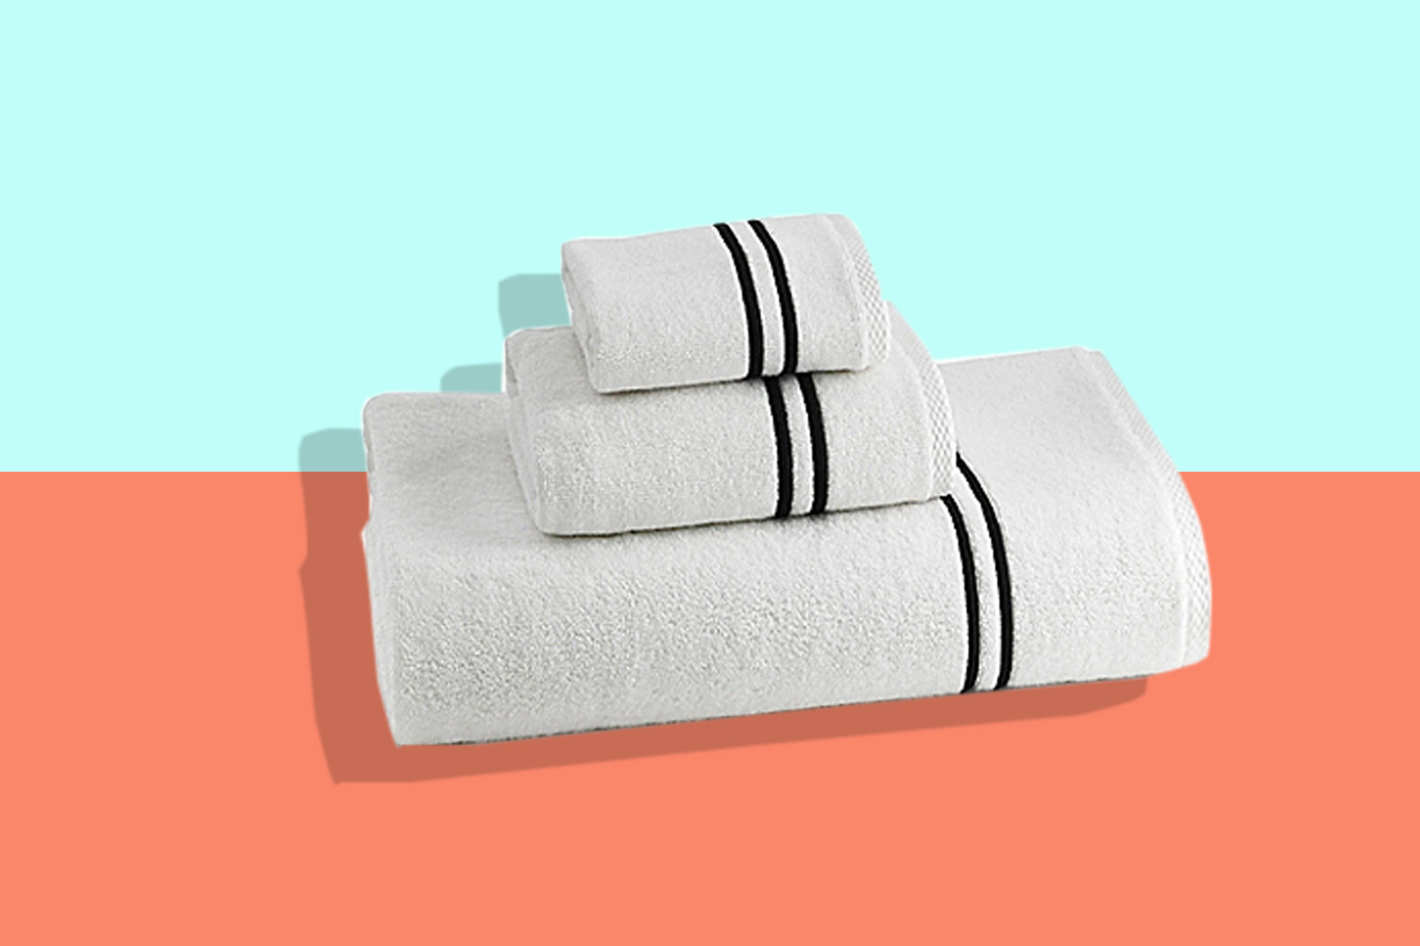 Kassatex Baratta Turkish Cotton Bath Towel in White/Black